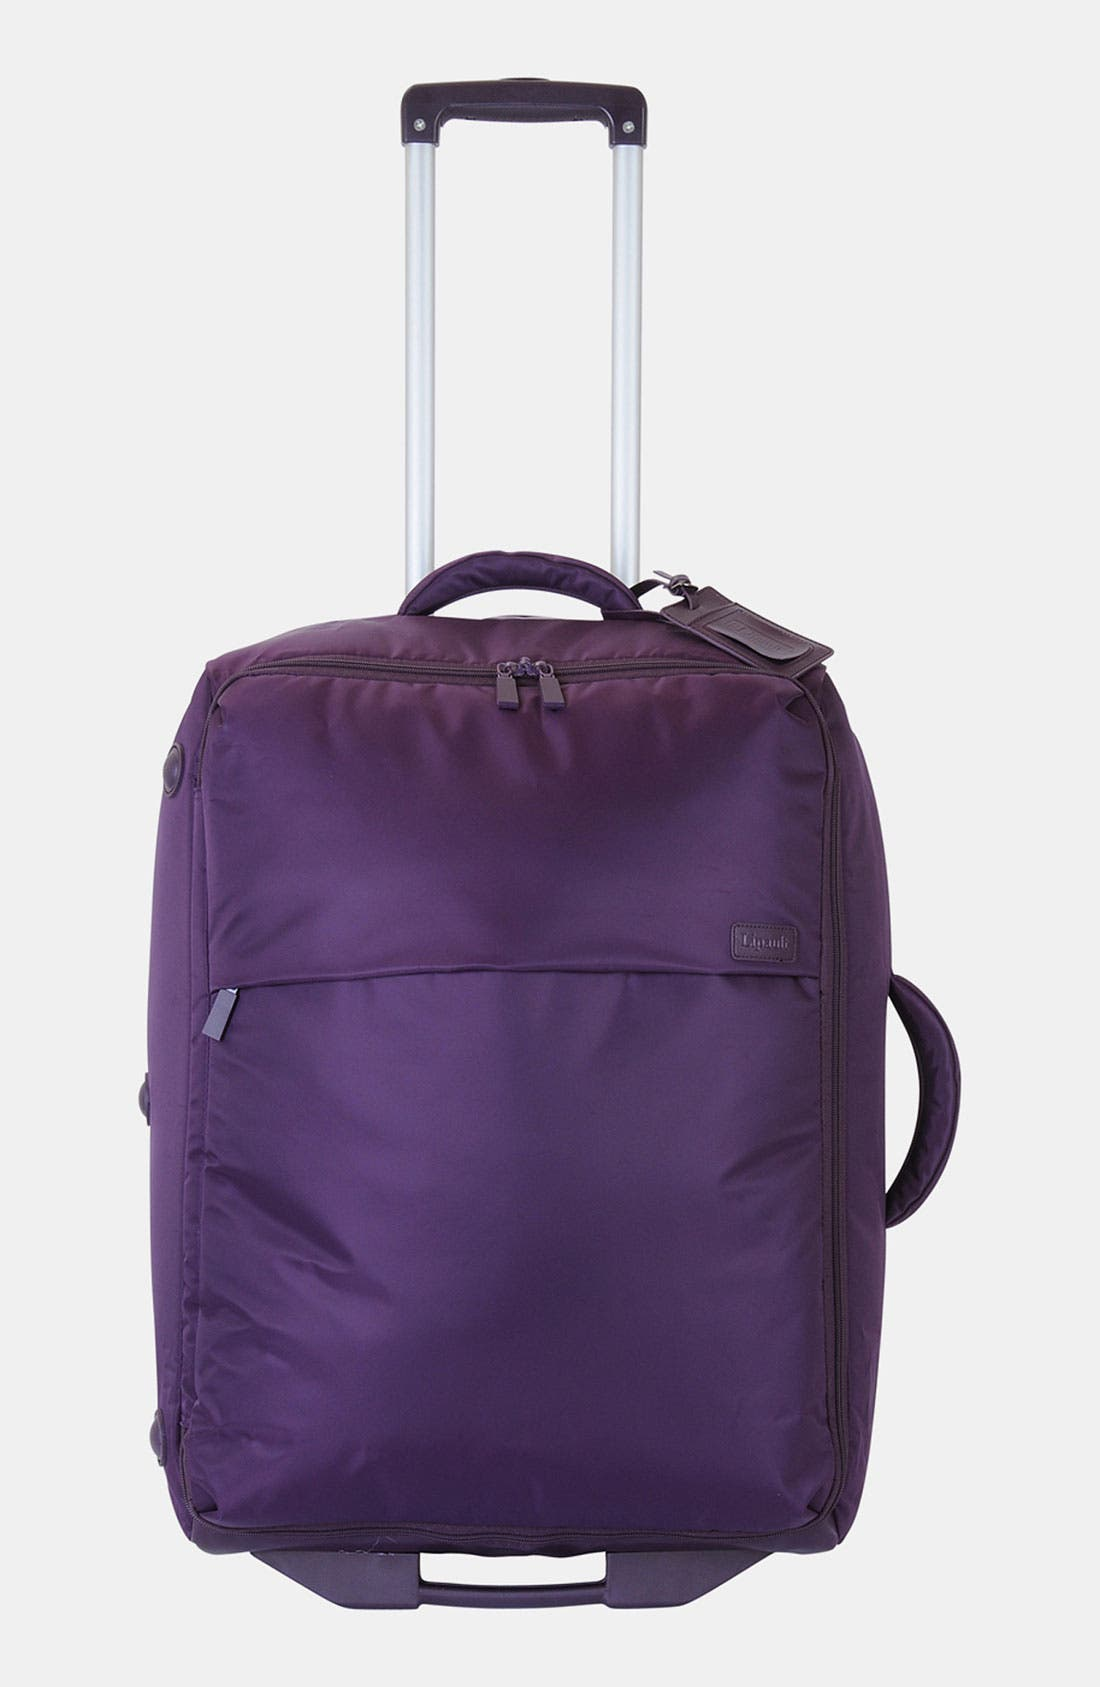 Main Image - LIPAULT Paris Foldable Rolling Packing Case (25 Inch)